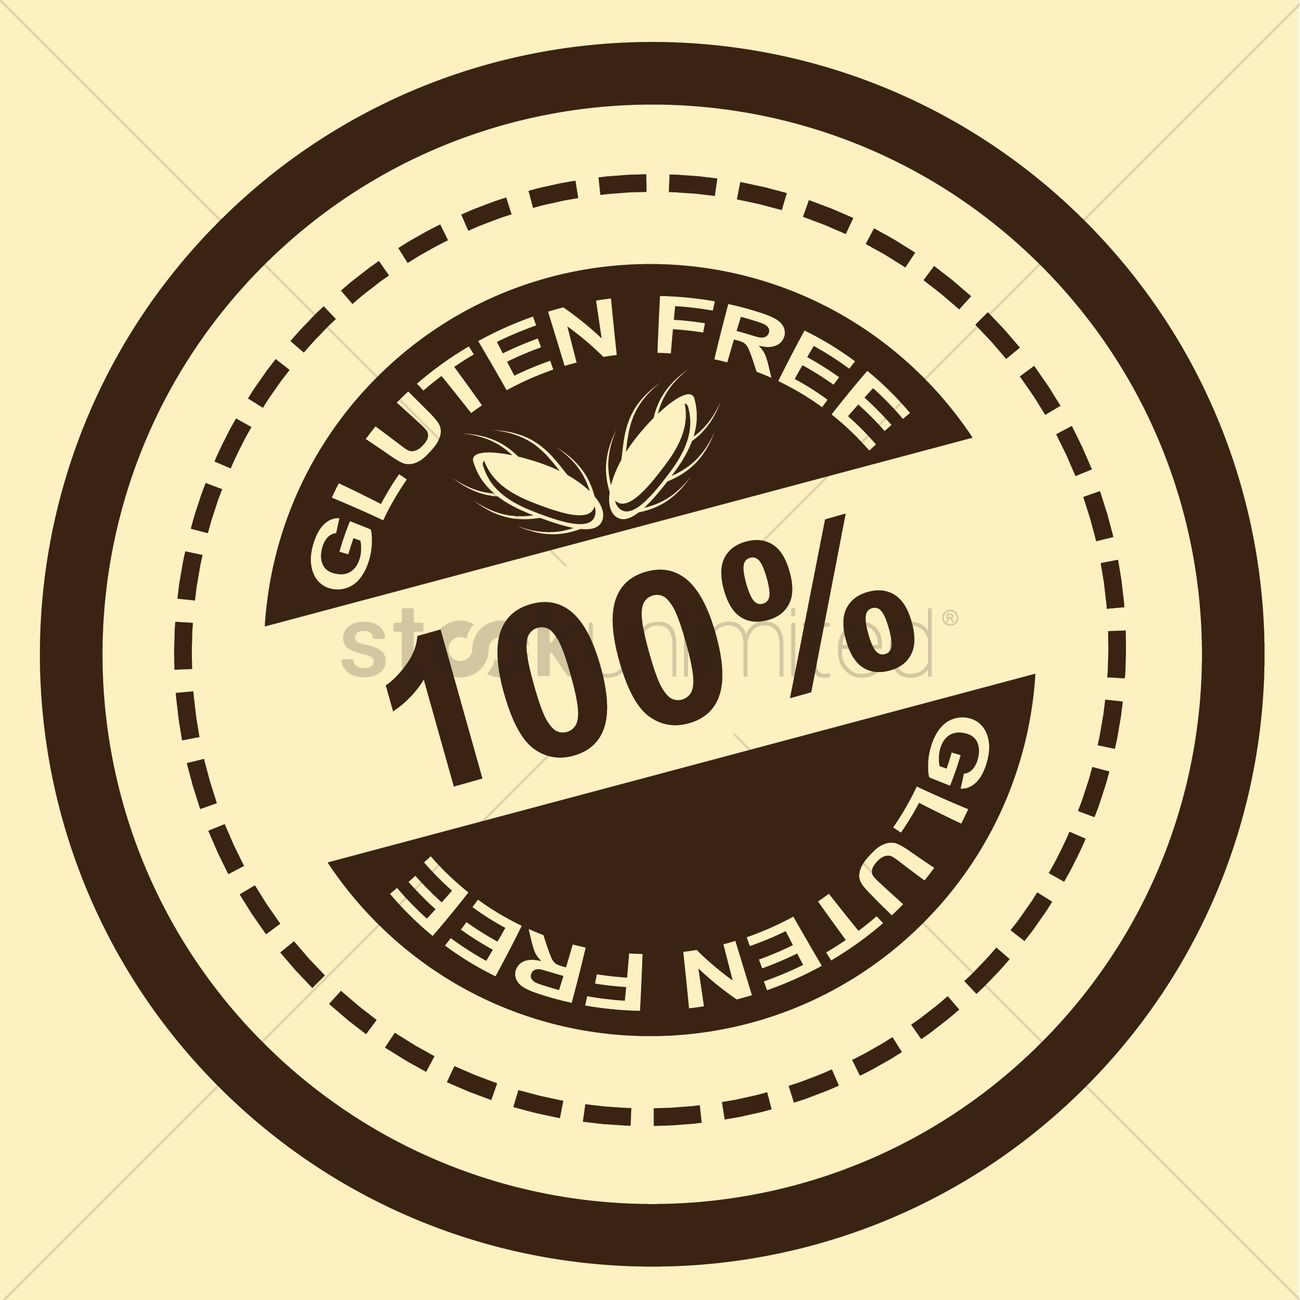 Gluten Free Symbol Vector at GetDrawings com | Free for personal use